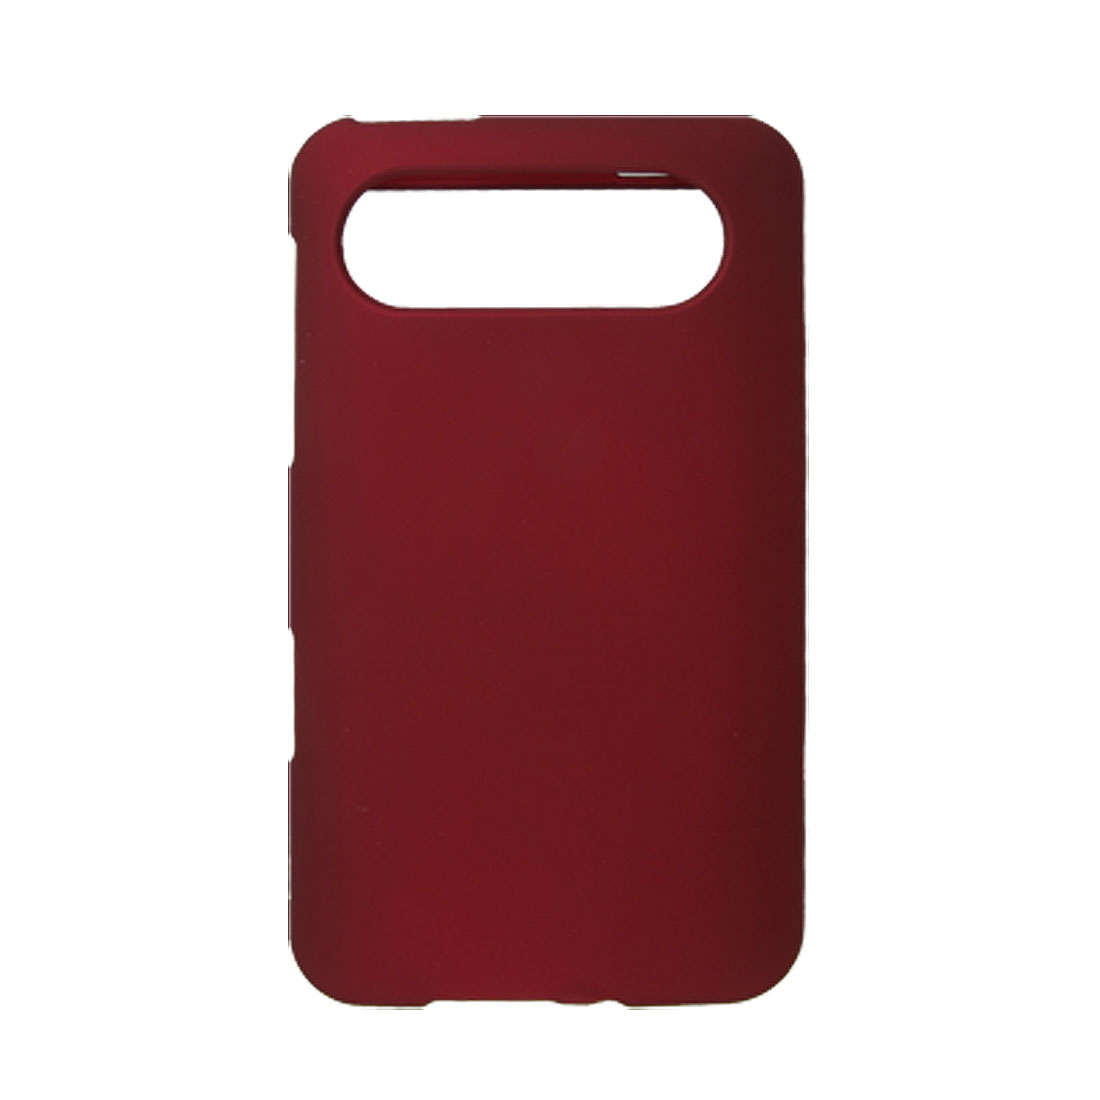 Burgundy Rubberized Hard Plastic Back Cover for HTC Schubert HD7